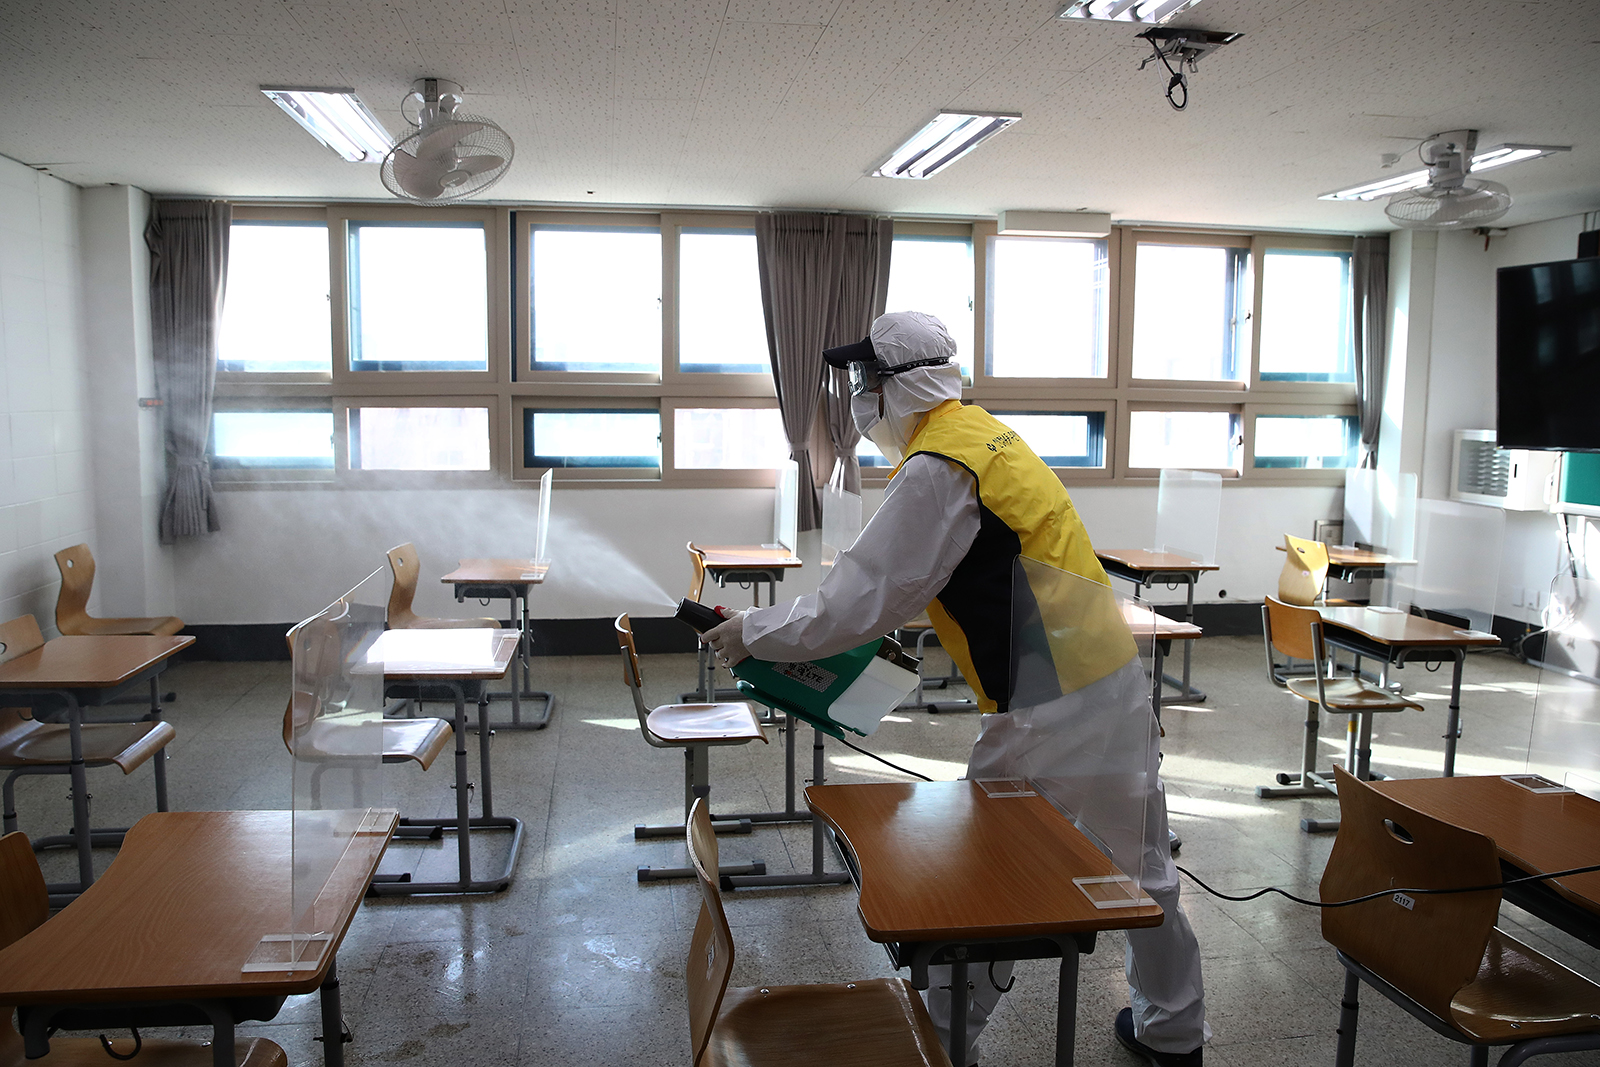 A disinfection worker sprays antiseptic solution in a classroom to prevent the spread of Covid-19 ahead of the annual college scholastic ability test at a YoungSang high school in Seoul on December 1.